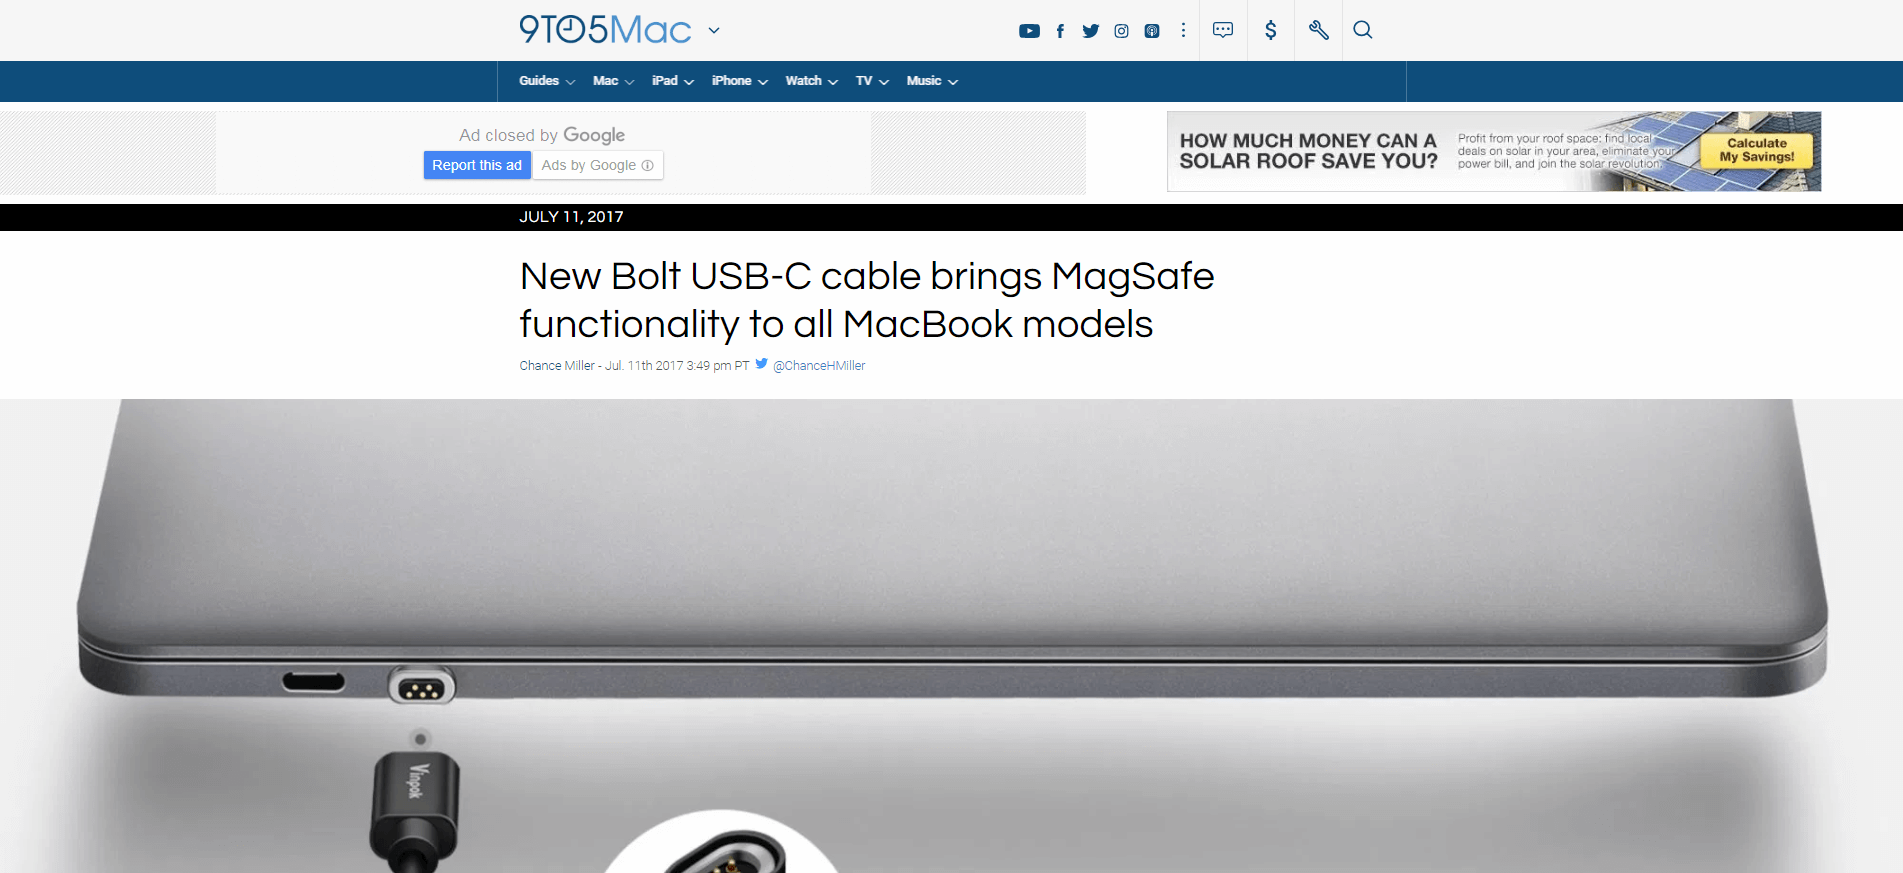 9to5mac-new-bolt-usb-c-cable-brings-magsafe-functionality-to-all-macbook-models